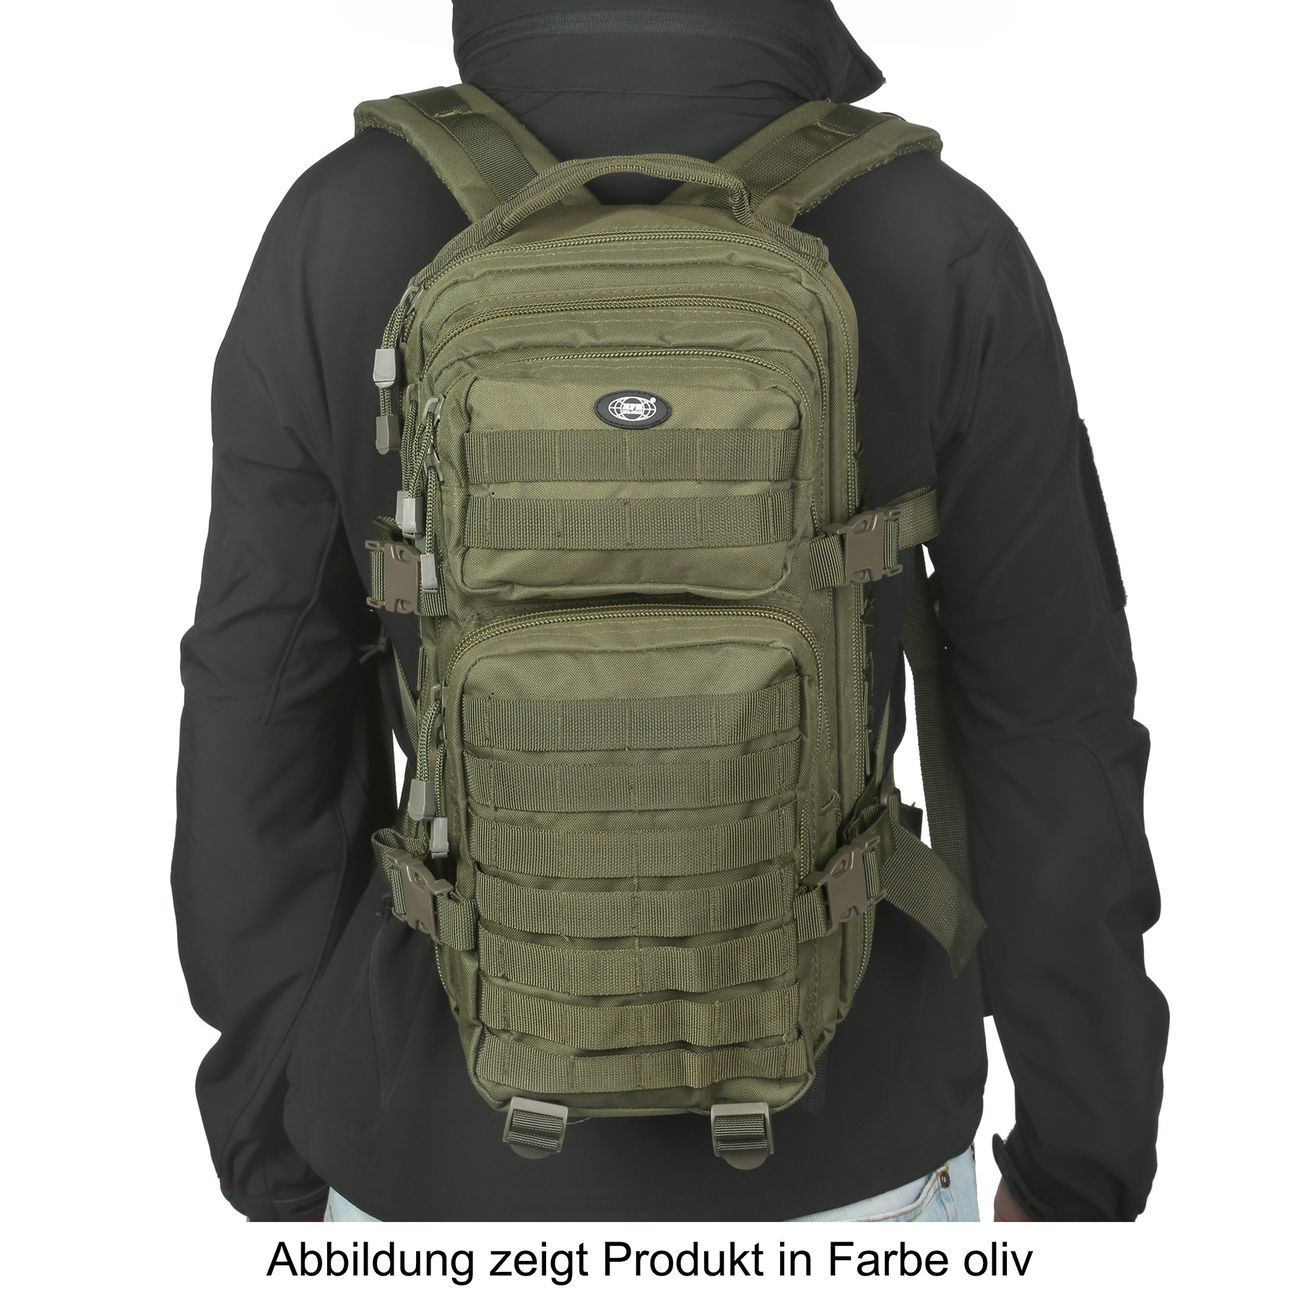 MFH Rucksack Assault I operation camo 4